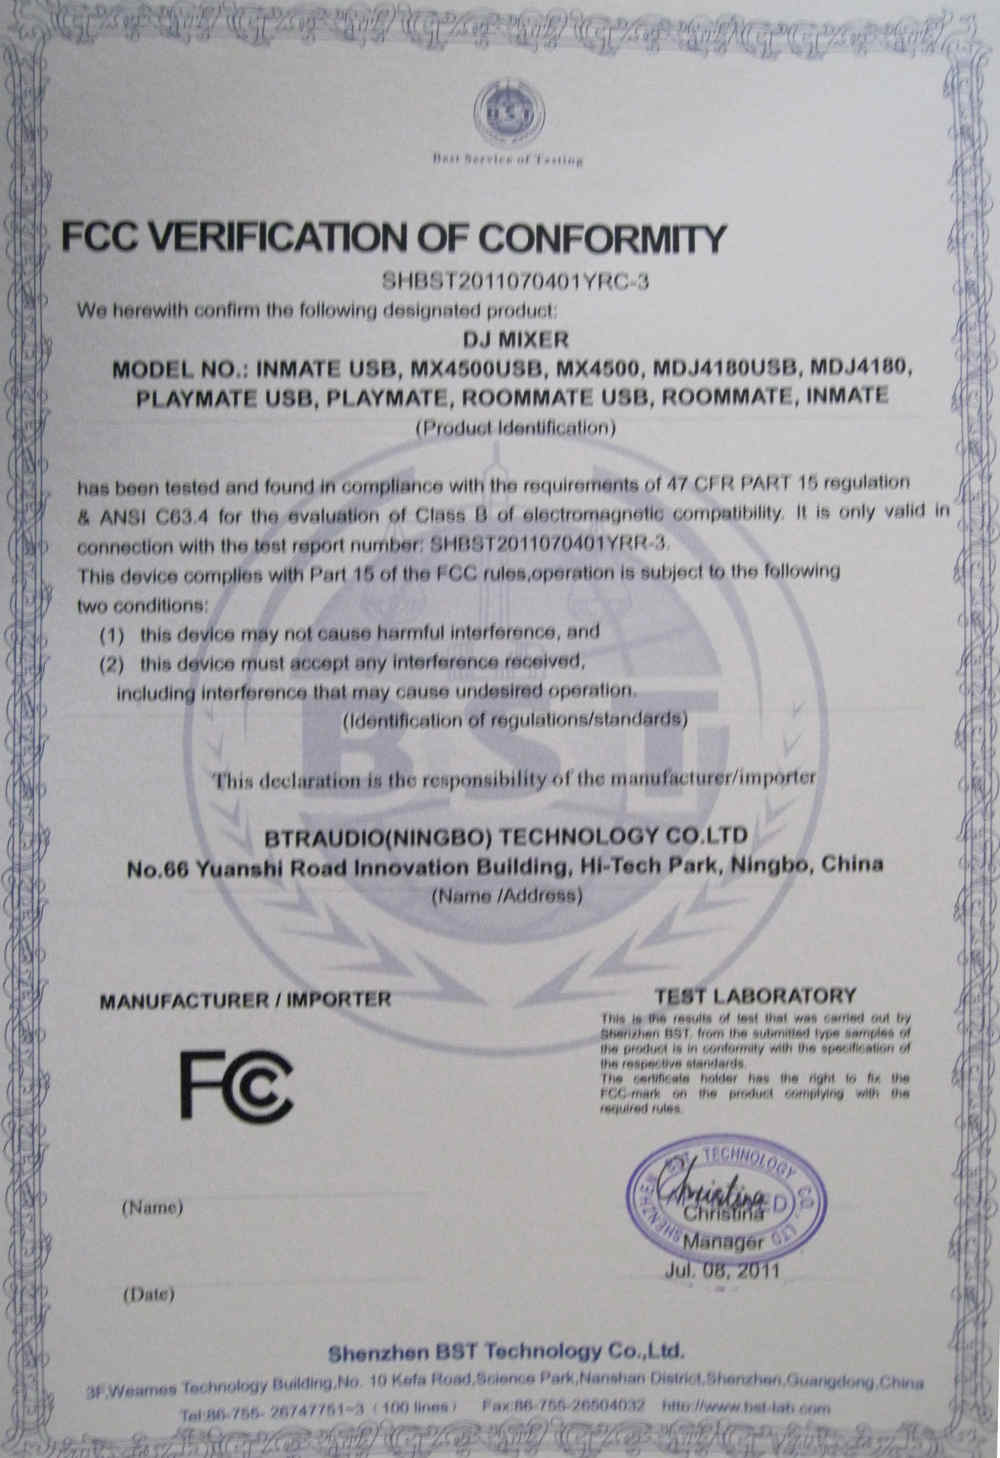 Certificates of FC